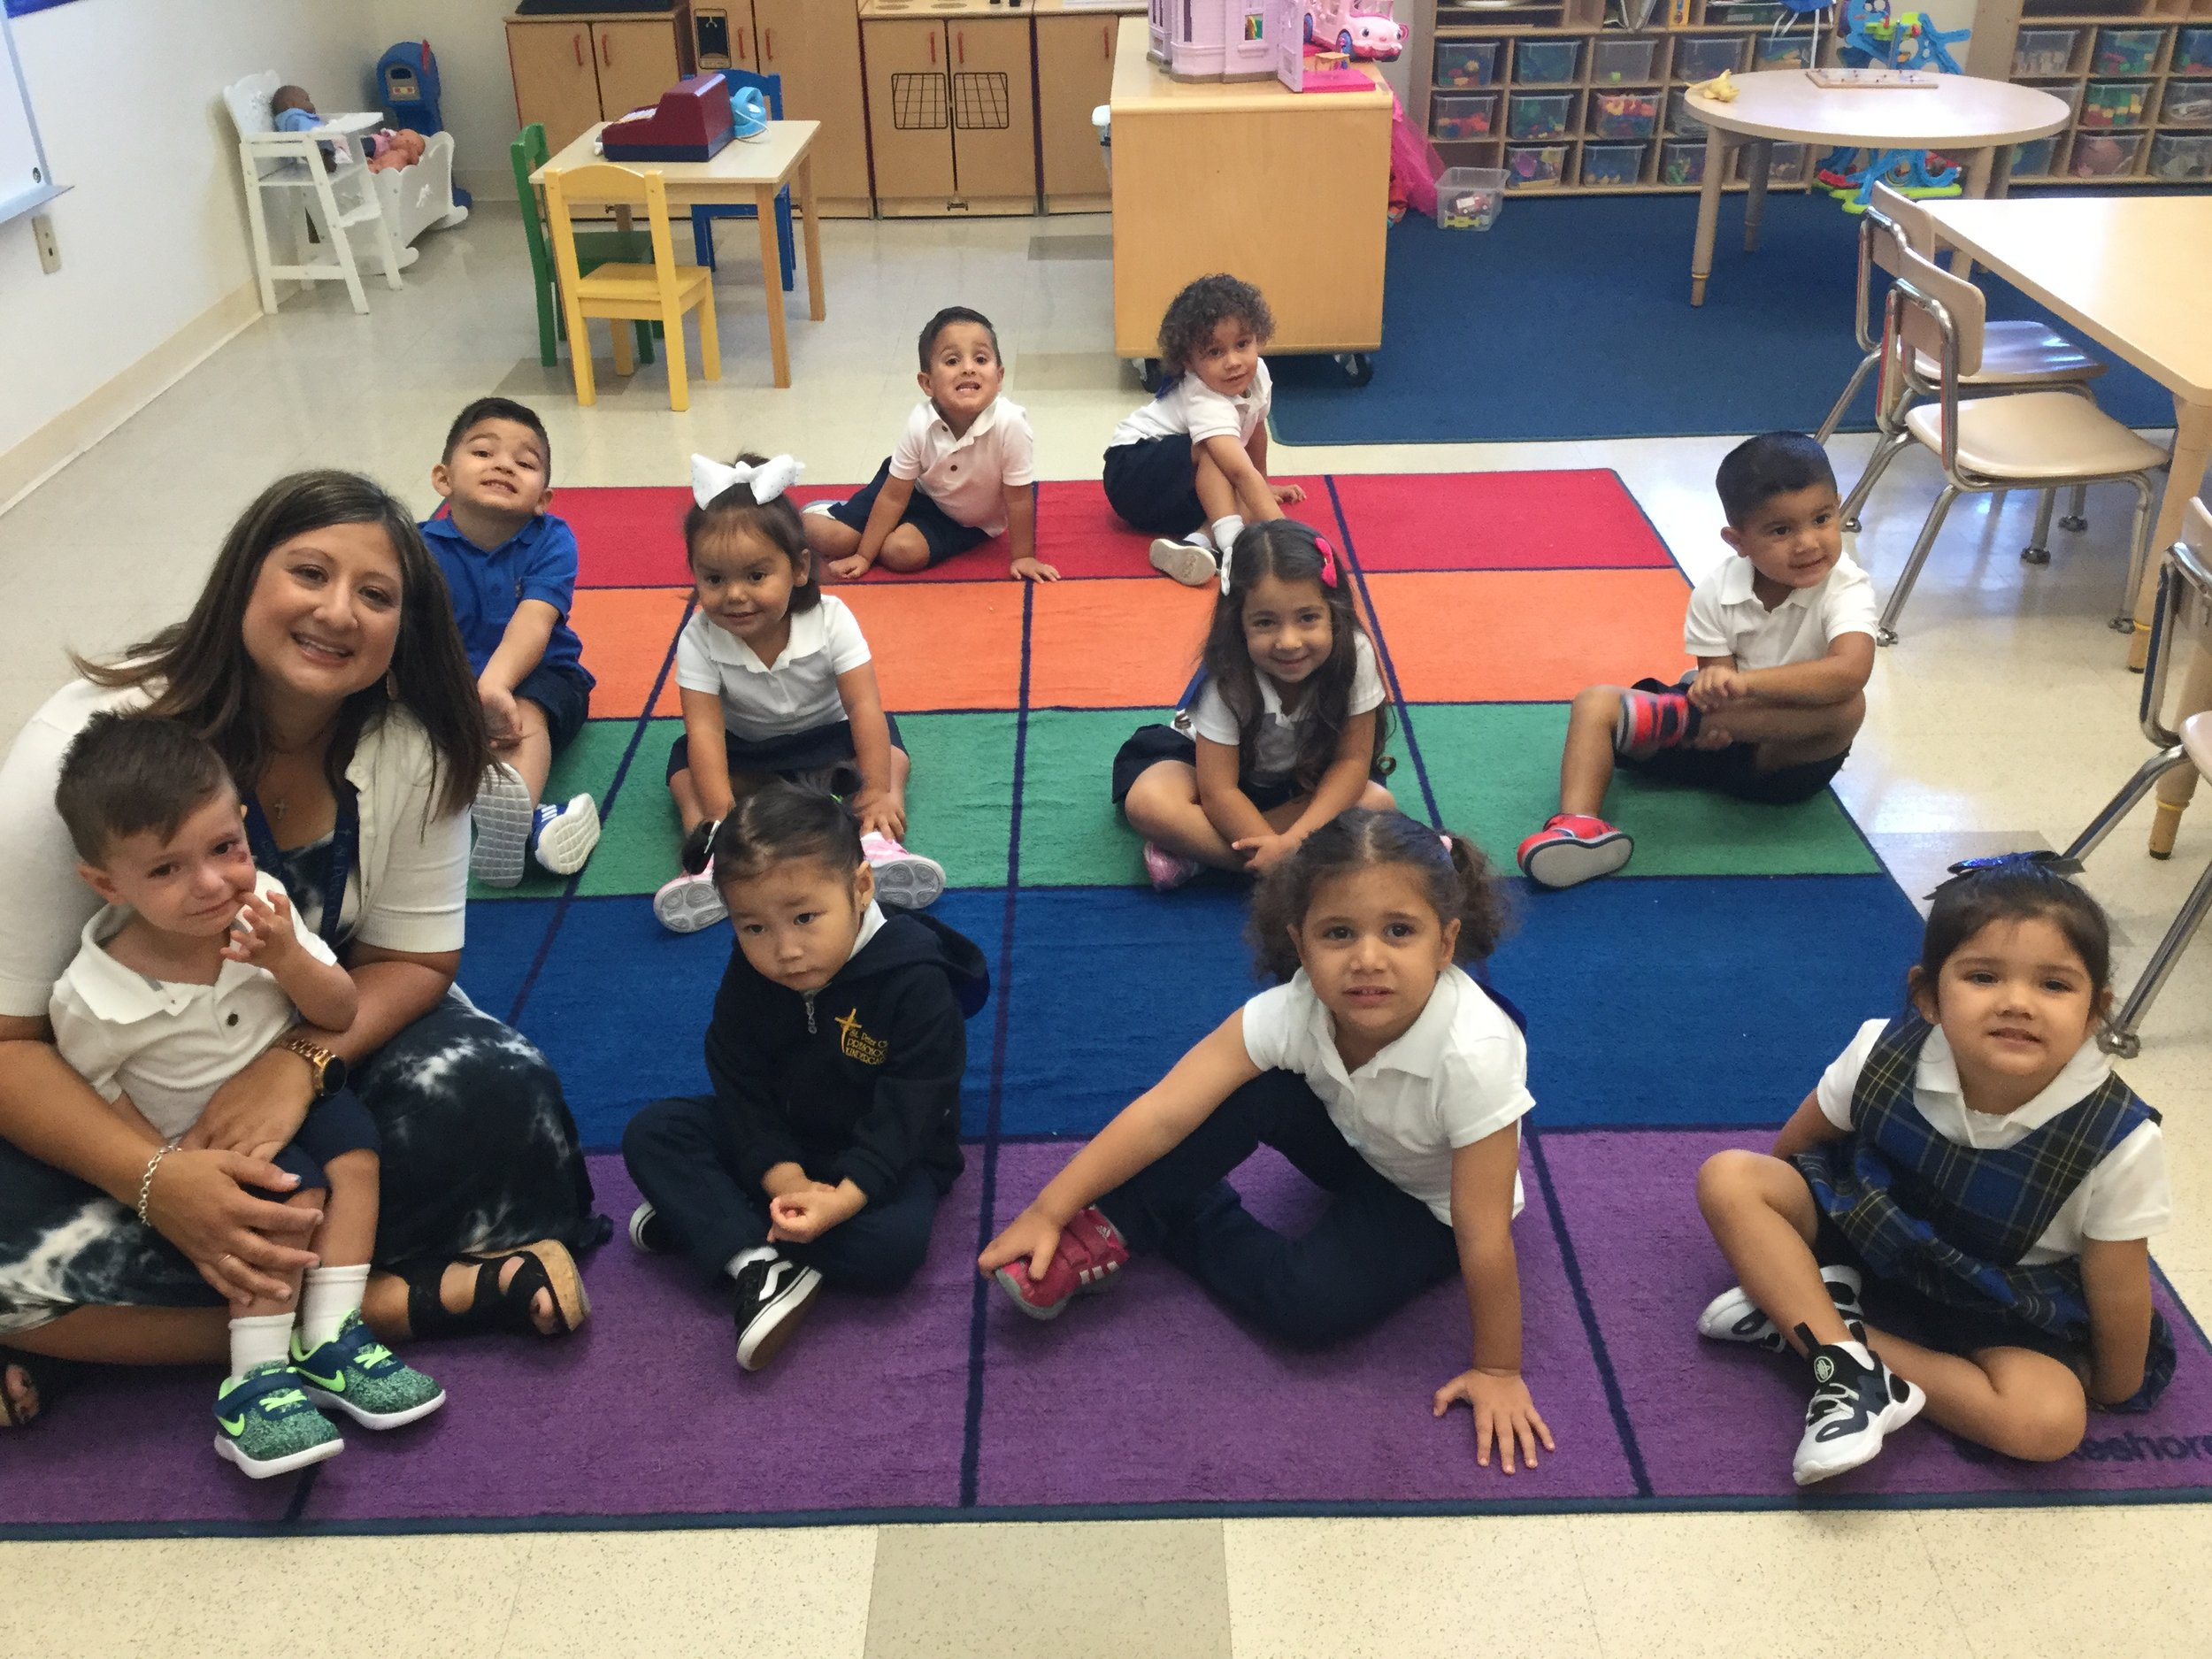 Our First Day of Preschool - Mon/Wed/Fri group